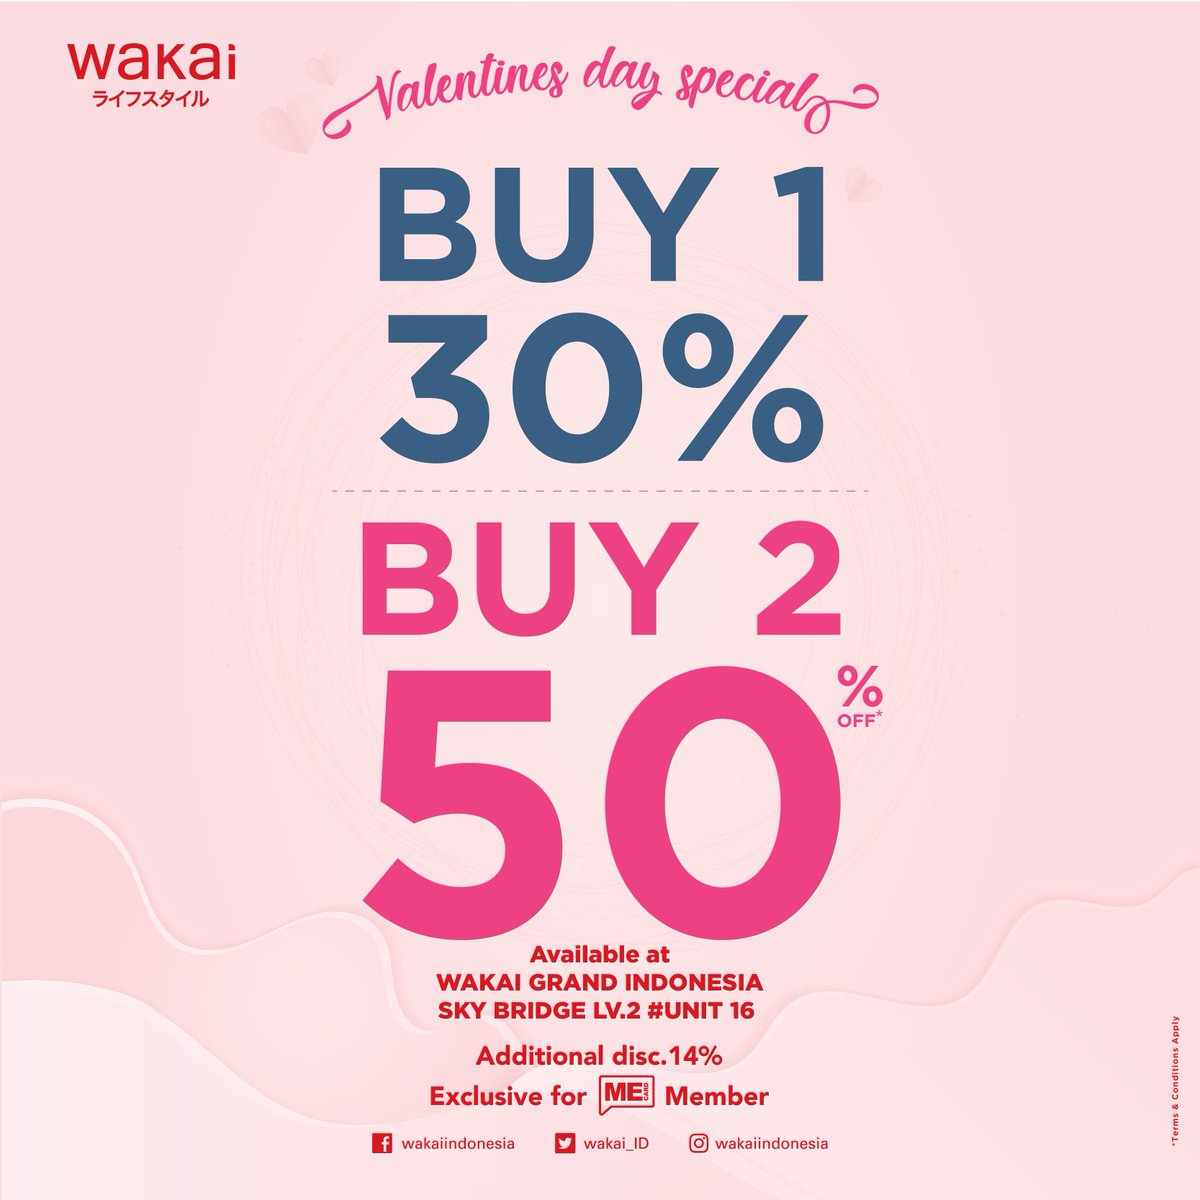 f10fc1ab Wakai buy 2 get 30% off discount and additional 14% exclusive for ME Card  holder from 11 Feb- 28 Feb 2019. *T&C apply #wakai #cheersforlife ...